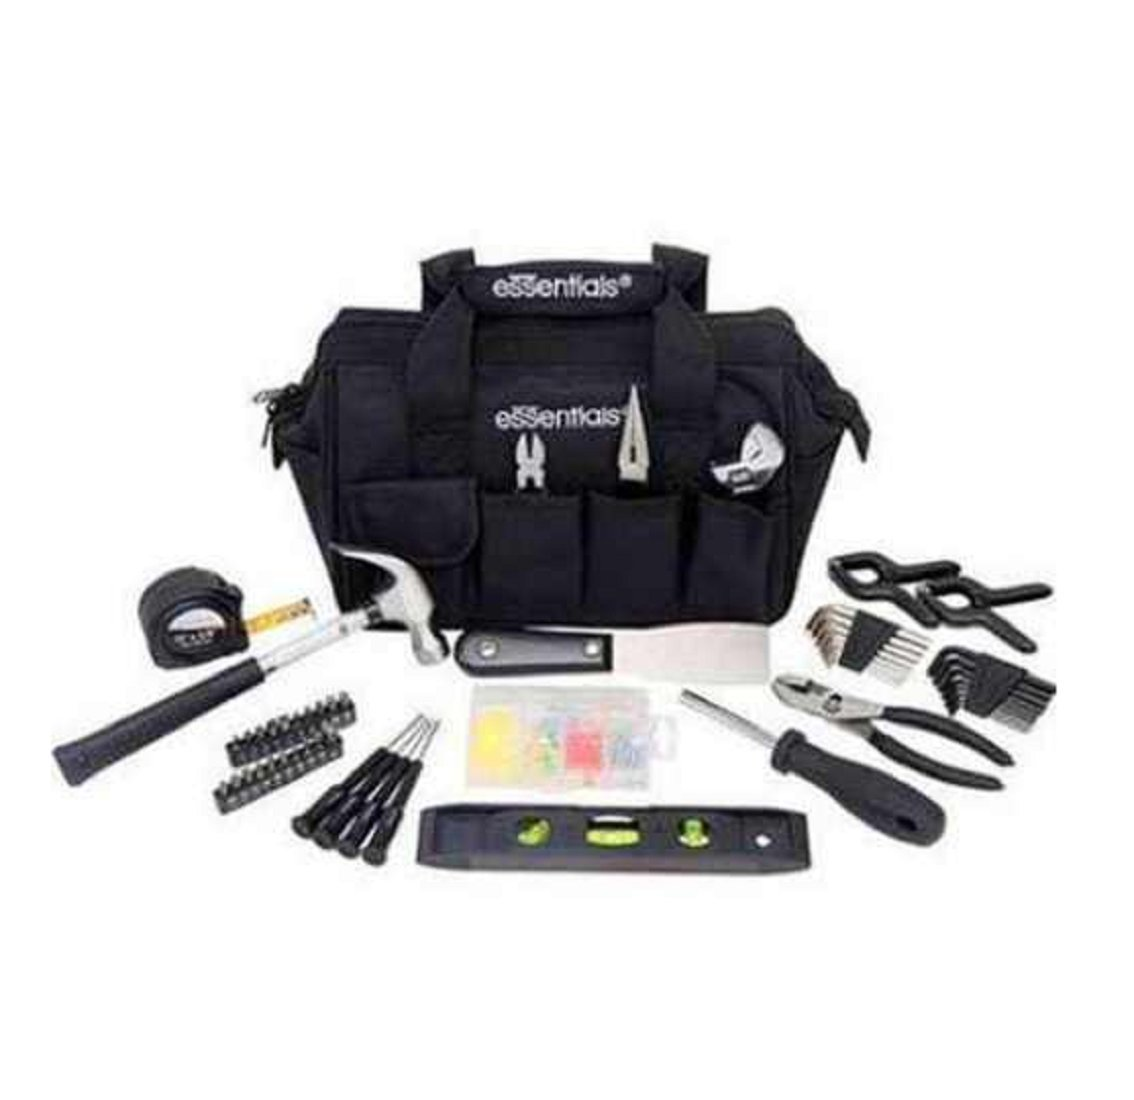 NEW Essentials 53 pc Around the House Tool Kit Mechanics Black Bag piece Set Men by Cherry's tools